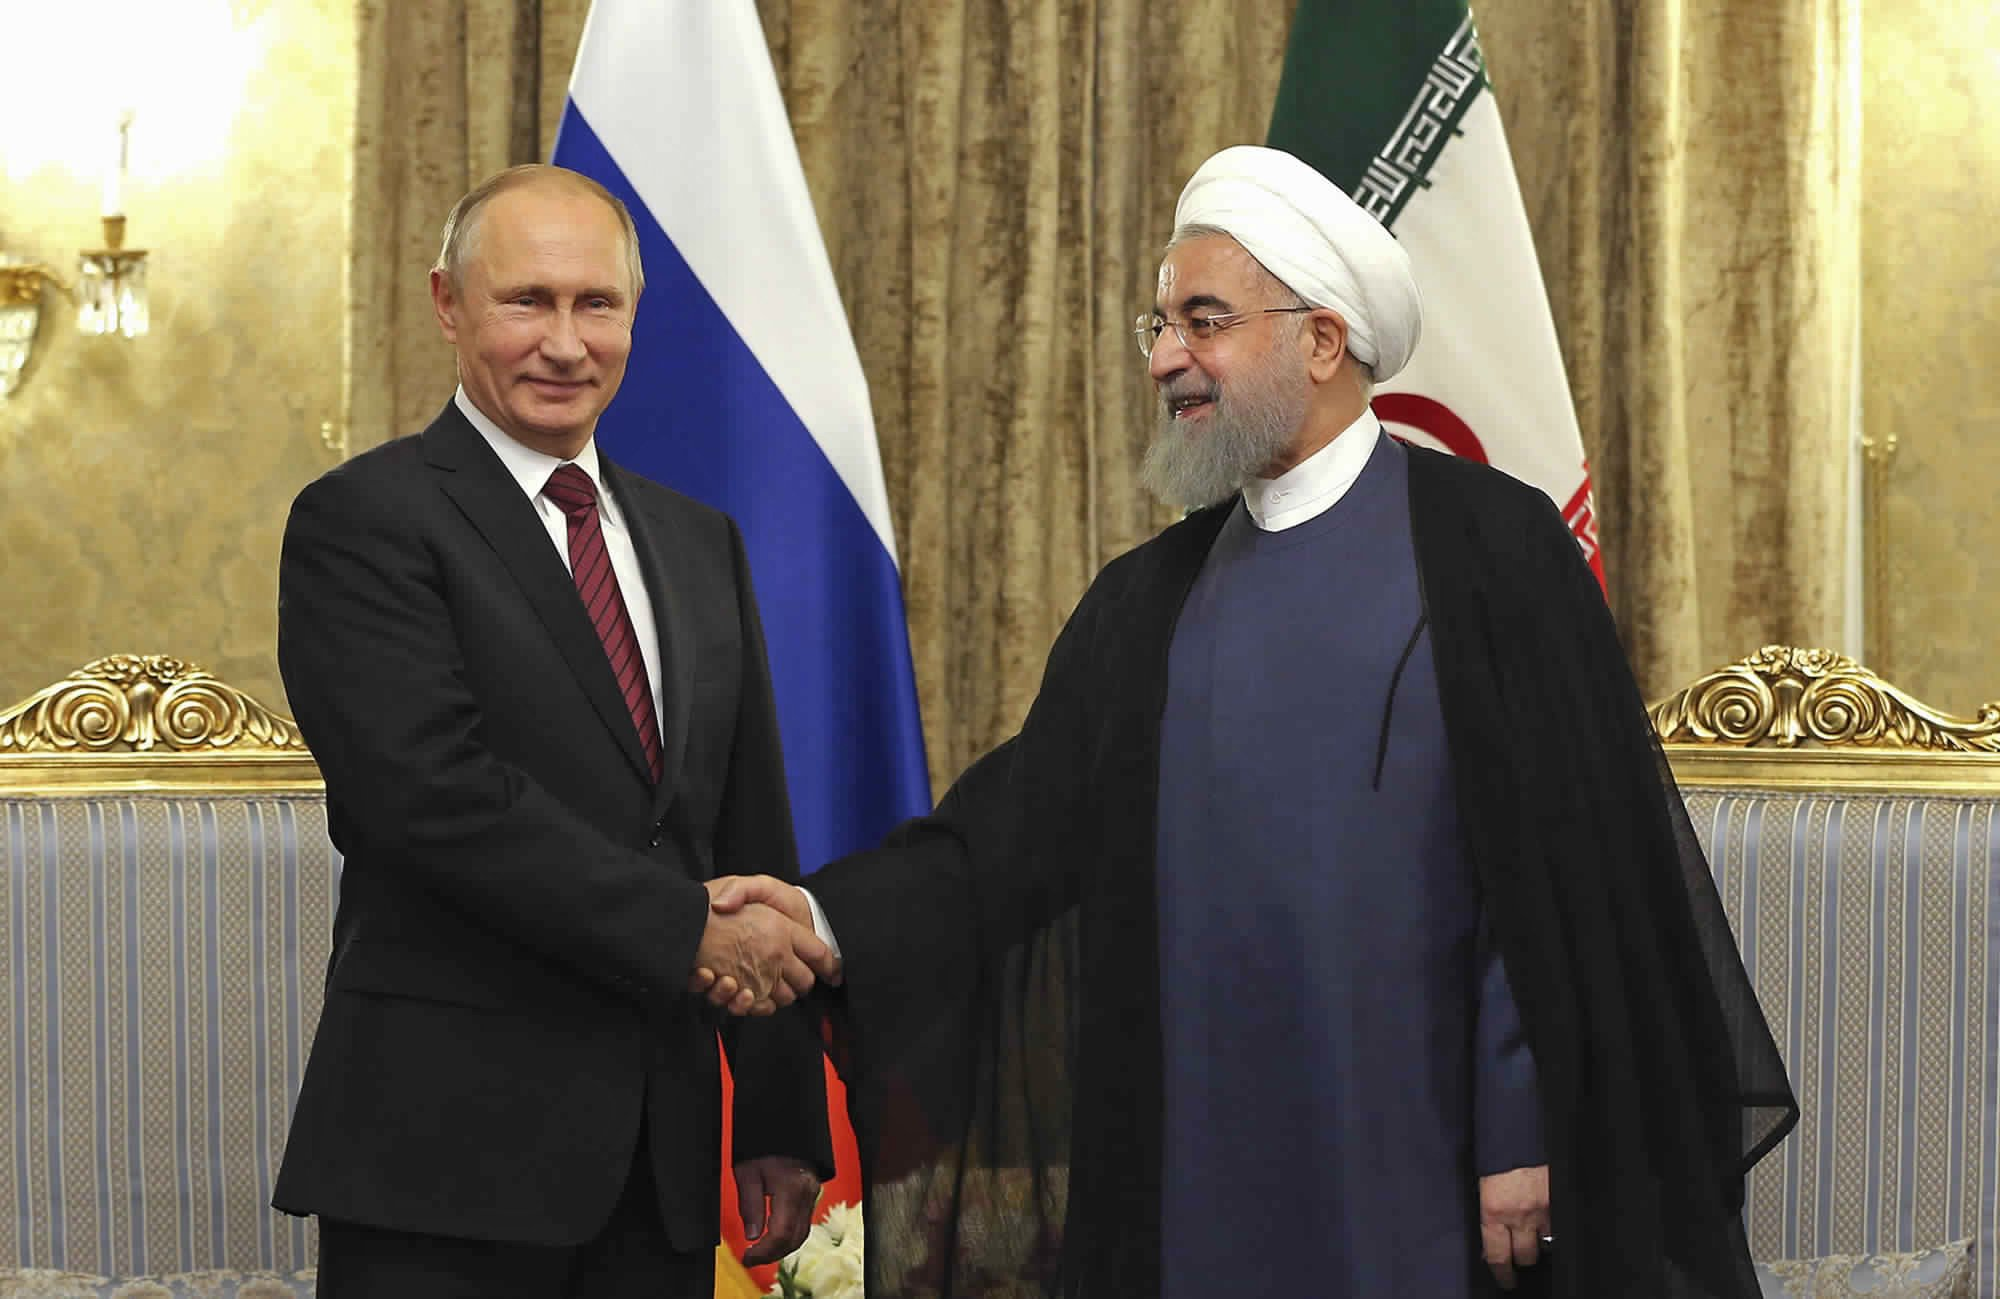 Putin In Iran For Talks Offers Support For Nuclear Deal